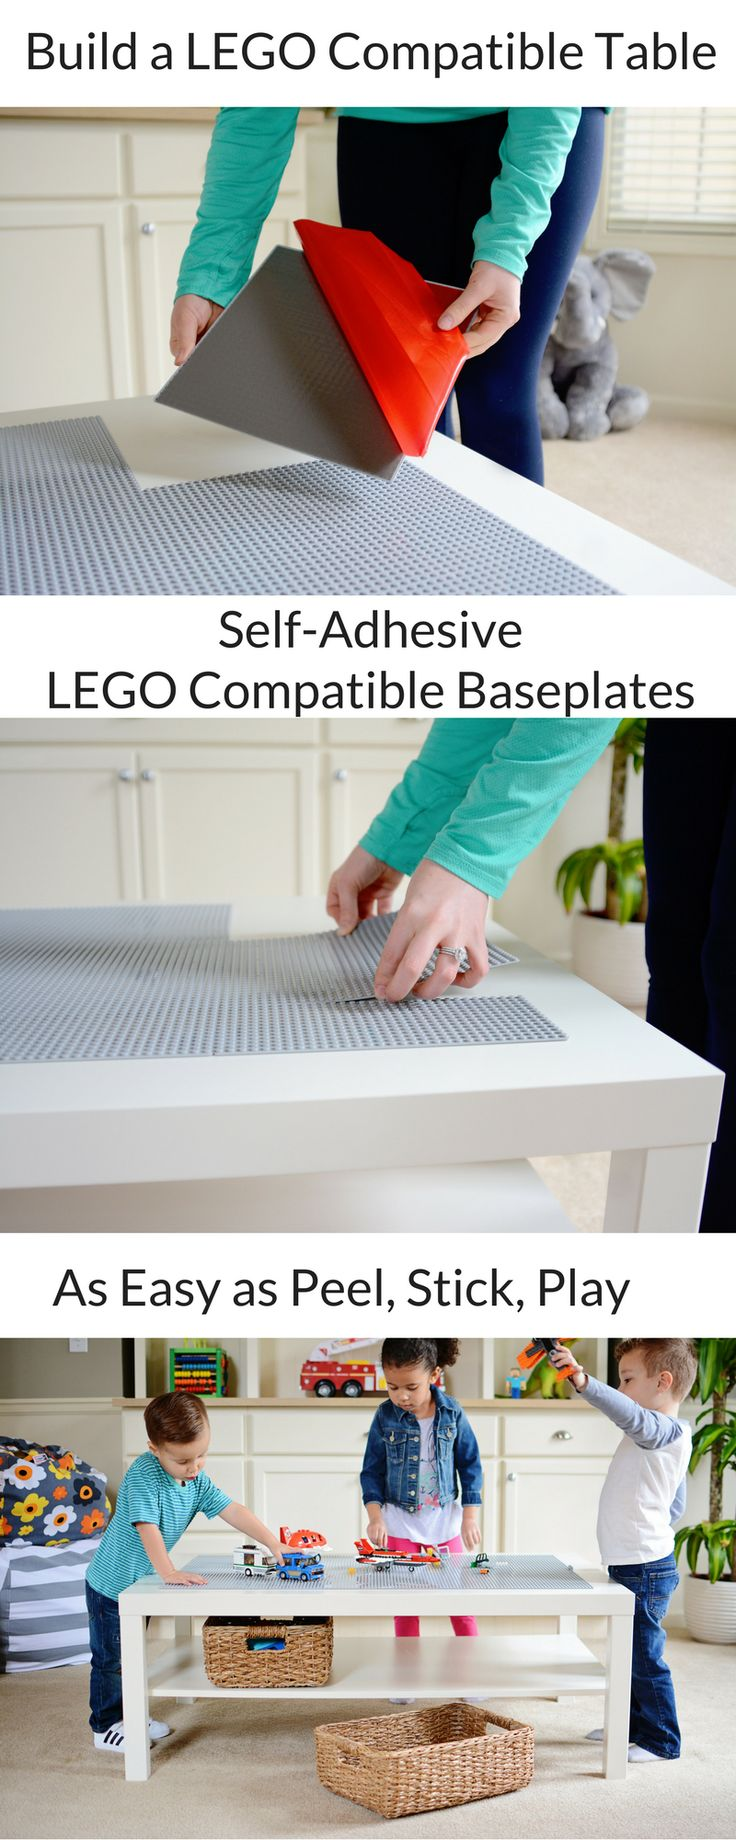 Build a DIY LEGO Compatible Table with NO GLUE REQUIRED! Self-adhesive peel 'n stick baseplates make building LEGO Compatible Tables as easy as Peel, Stick, Play!